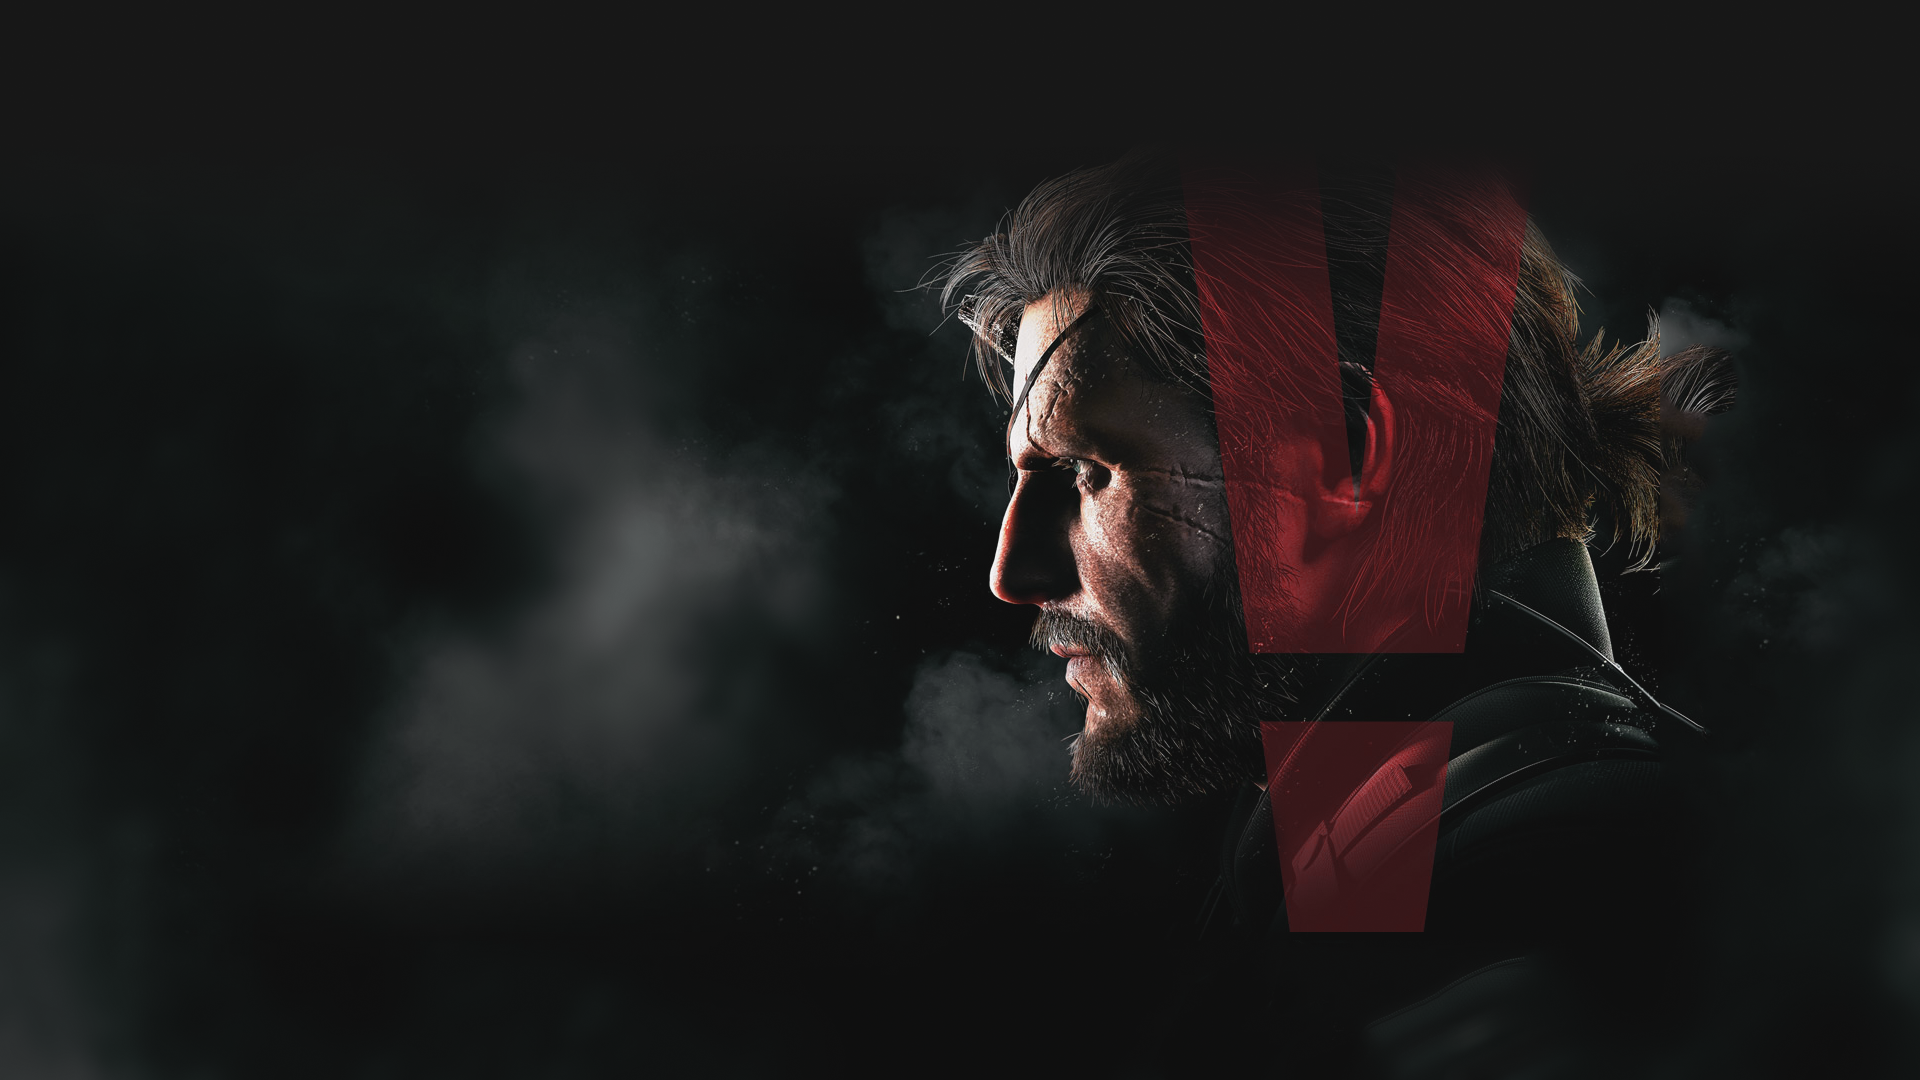 Metal Gear Solid V: The Phantom Pain Wallpaper HD